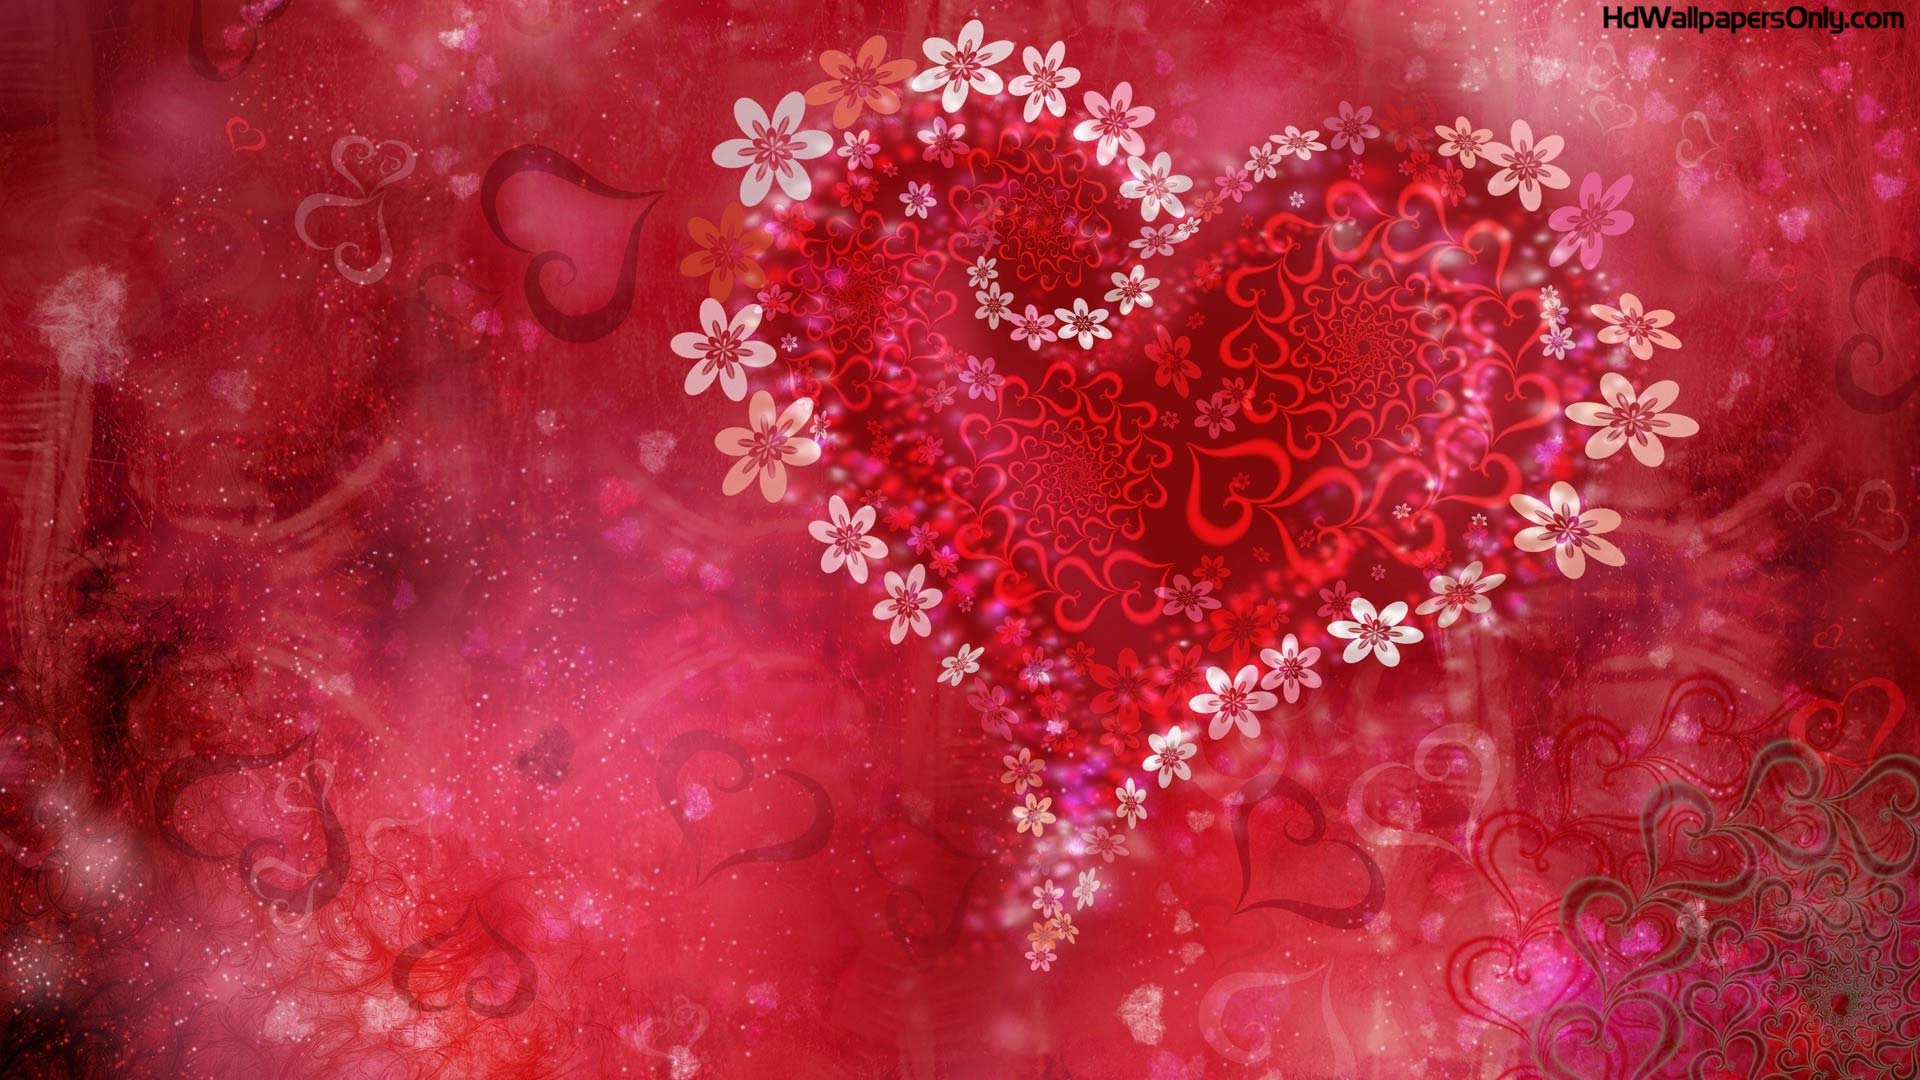 Heart Backgrounds Pictures